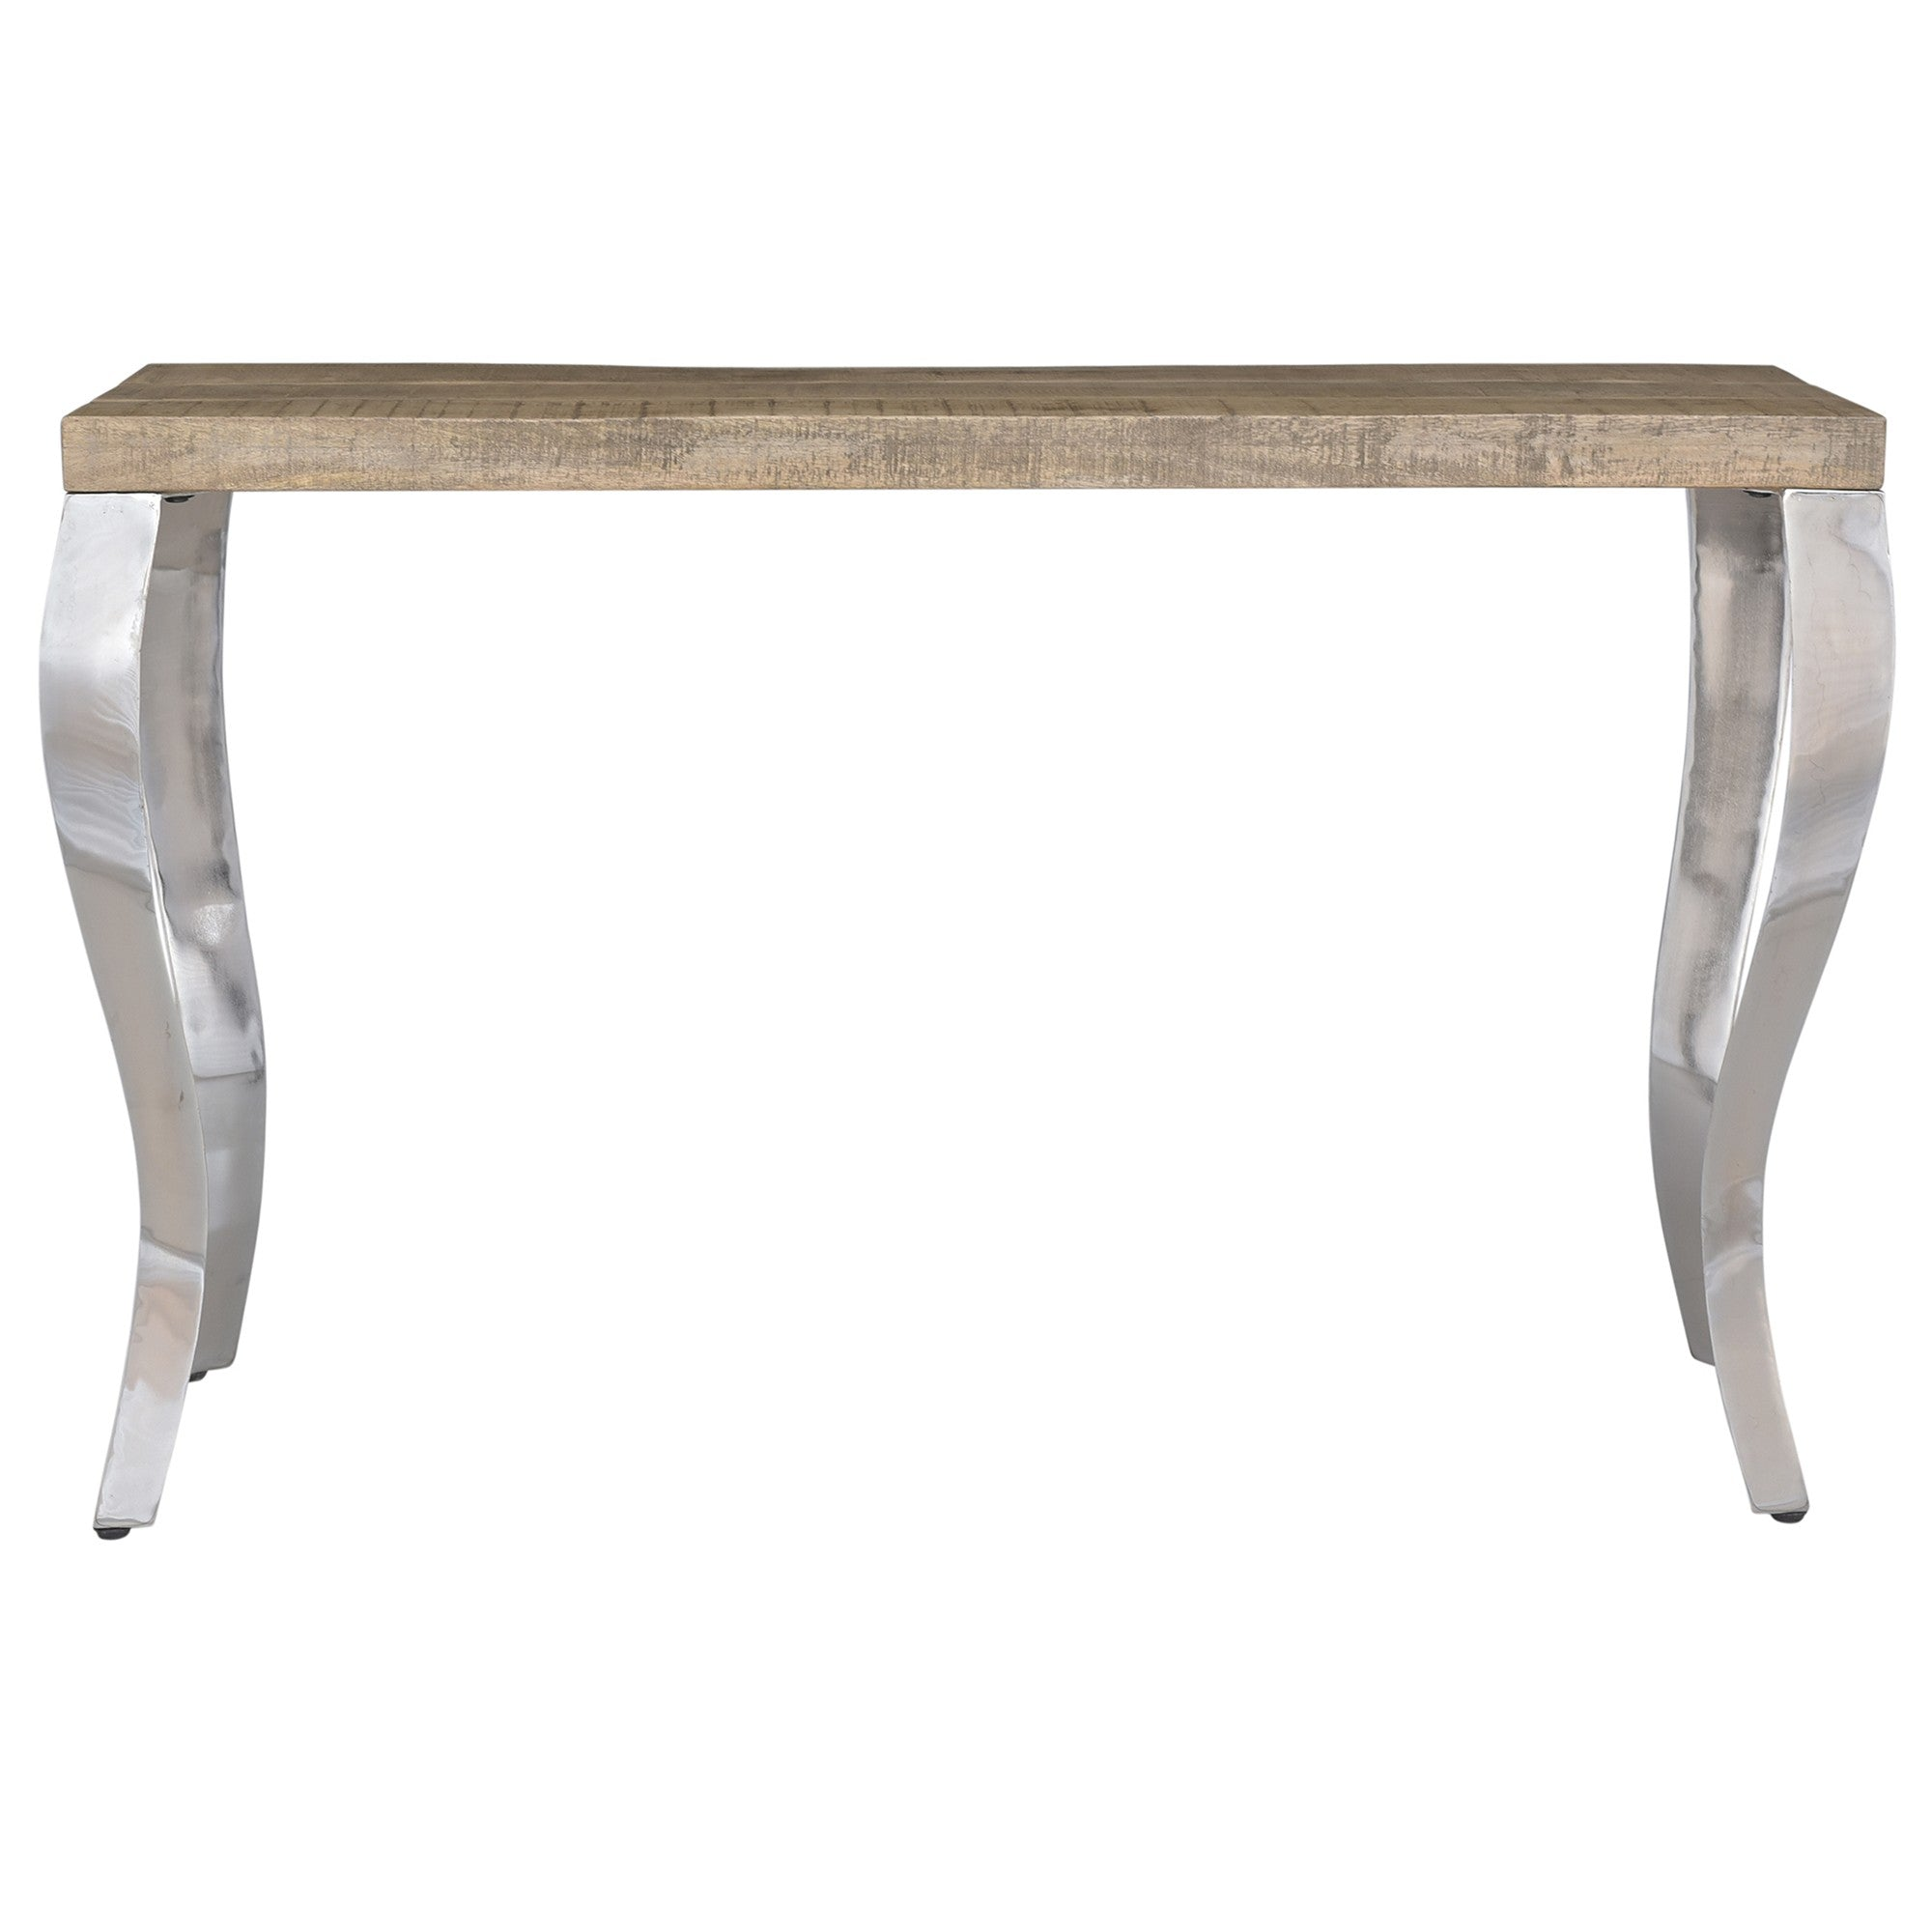 Natalia Console Table in Reclaimed & Chrome